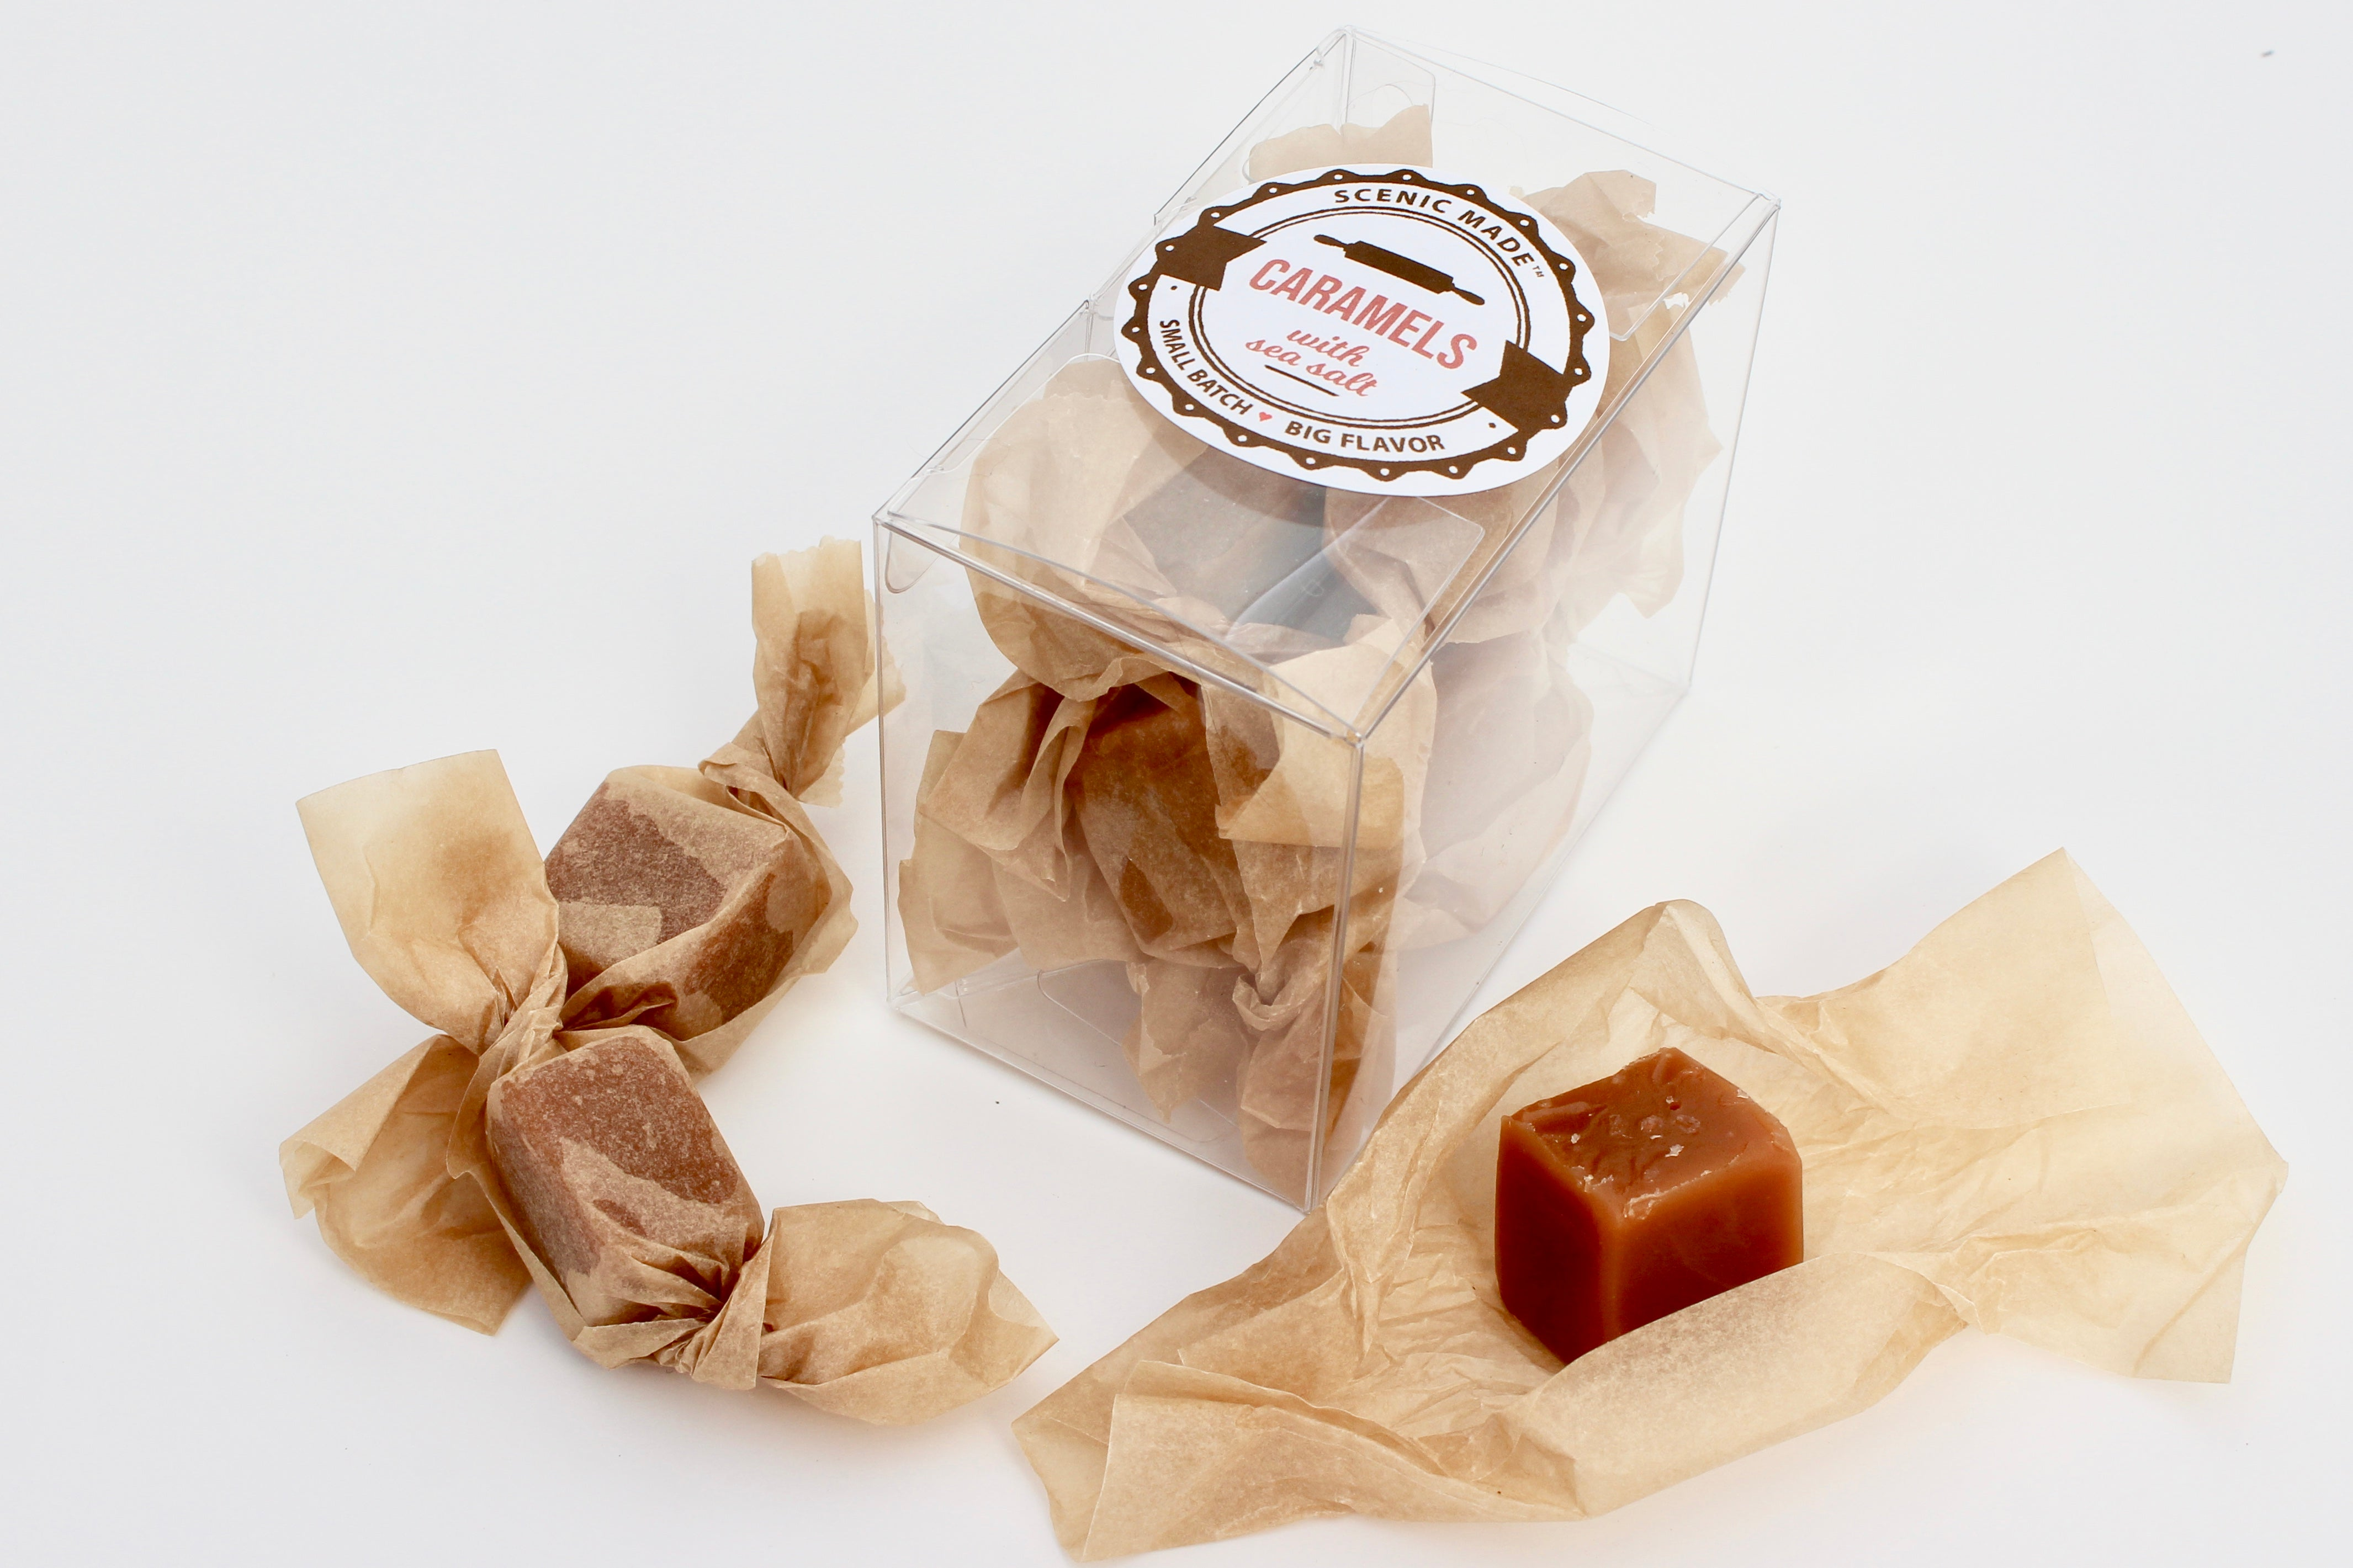 Homemade caramels, individually wrapped with unbleached parchment paper.  8 caramels are packed into a clear, rectangular food safe container with an attractive label on the front.